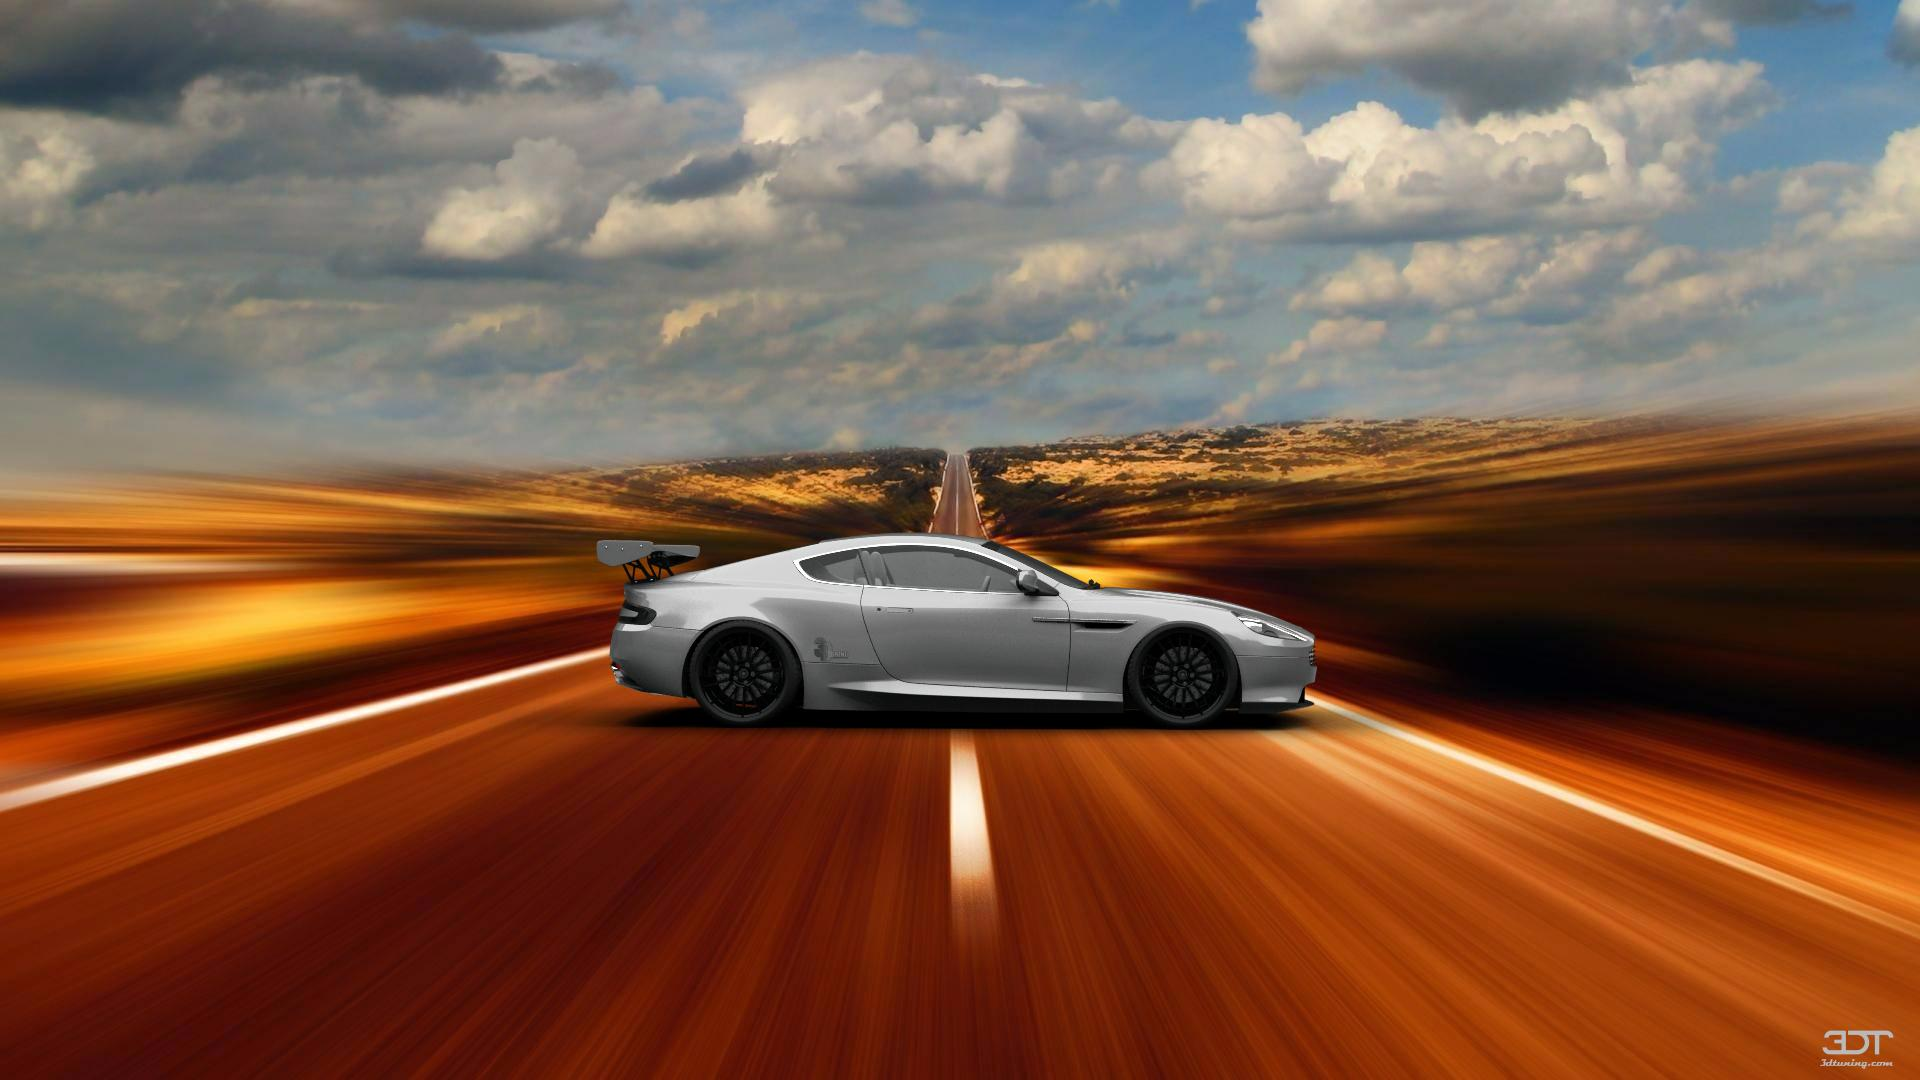 Tuning Aston Martin Virage Coupe 2012 Online Accessories